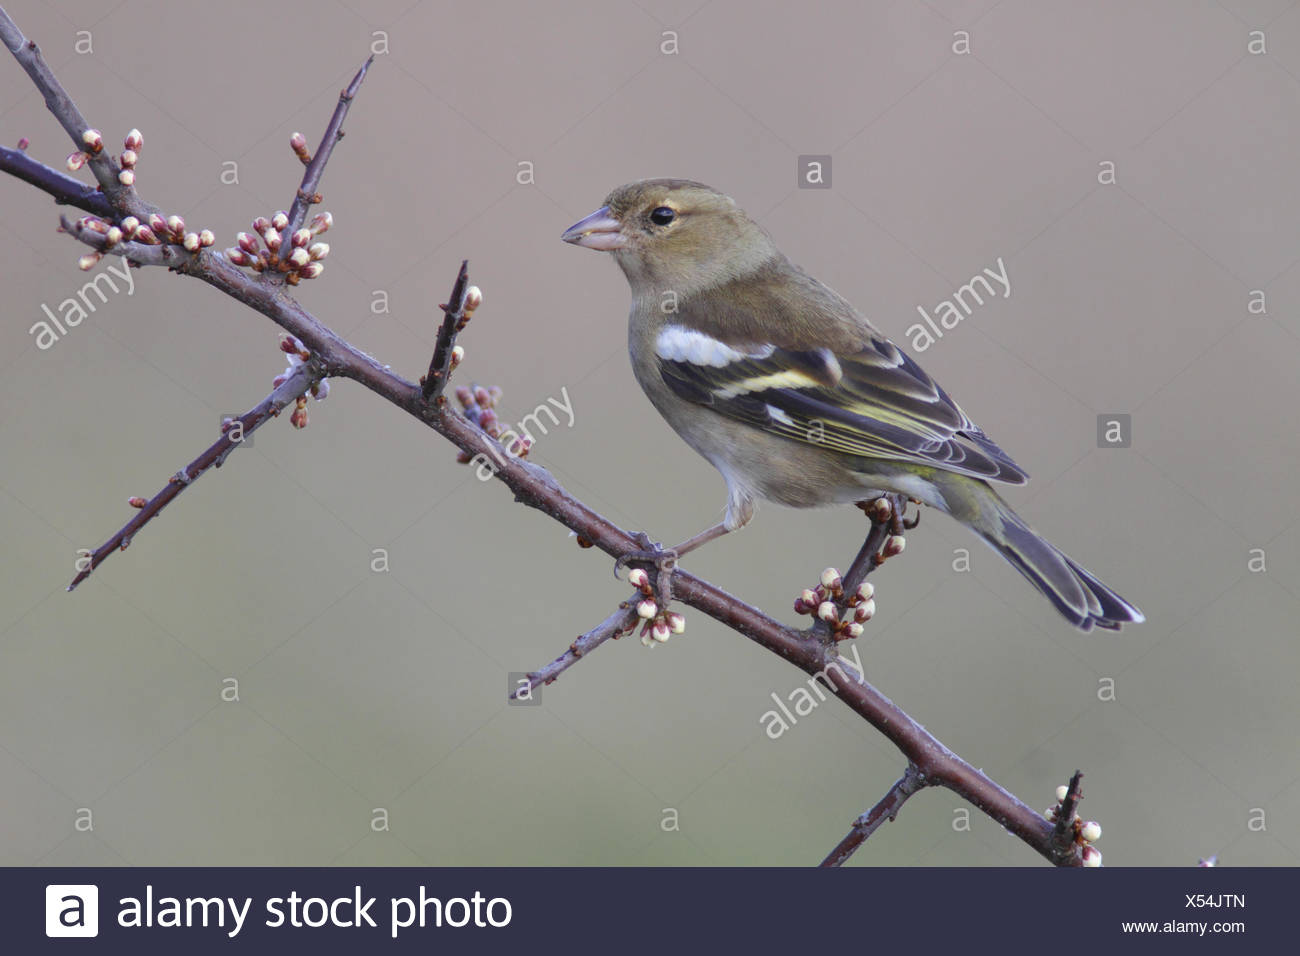 Common Chaffinch (Fringilla coelebs) adult female, perched on Blackthorn (Prunus spinosa) twig with flowerbuds, West Yorkshire, - Stock Image